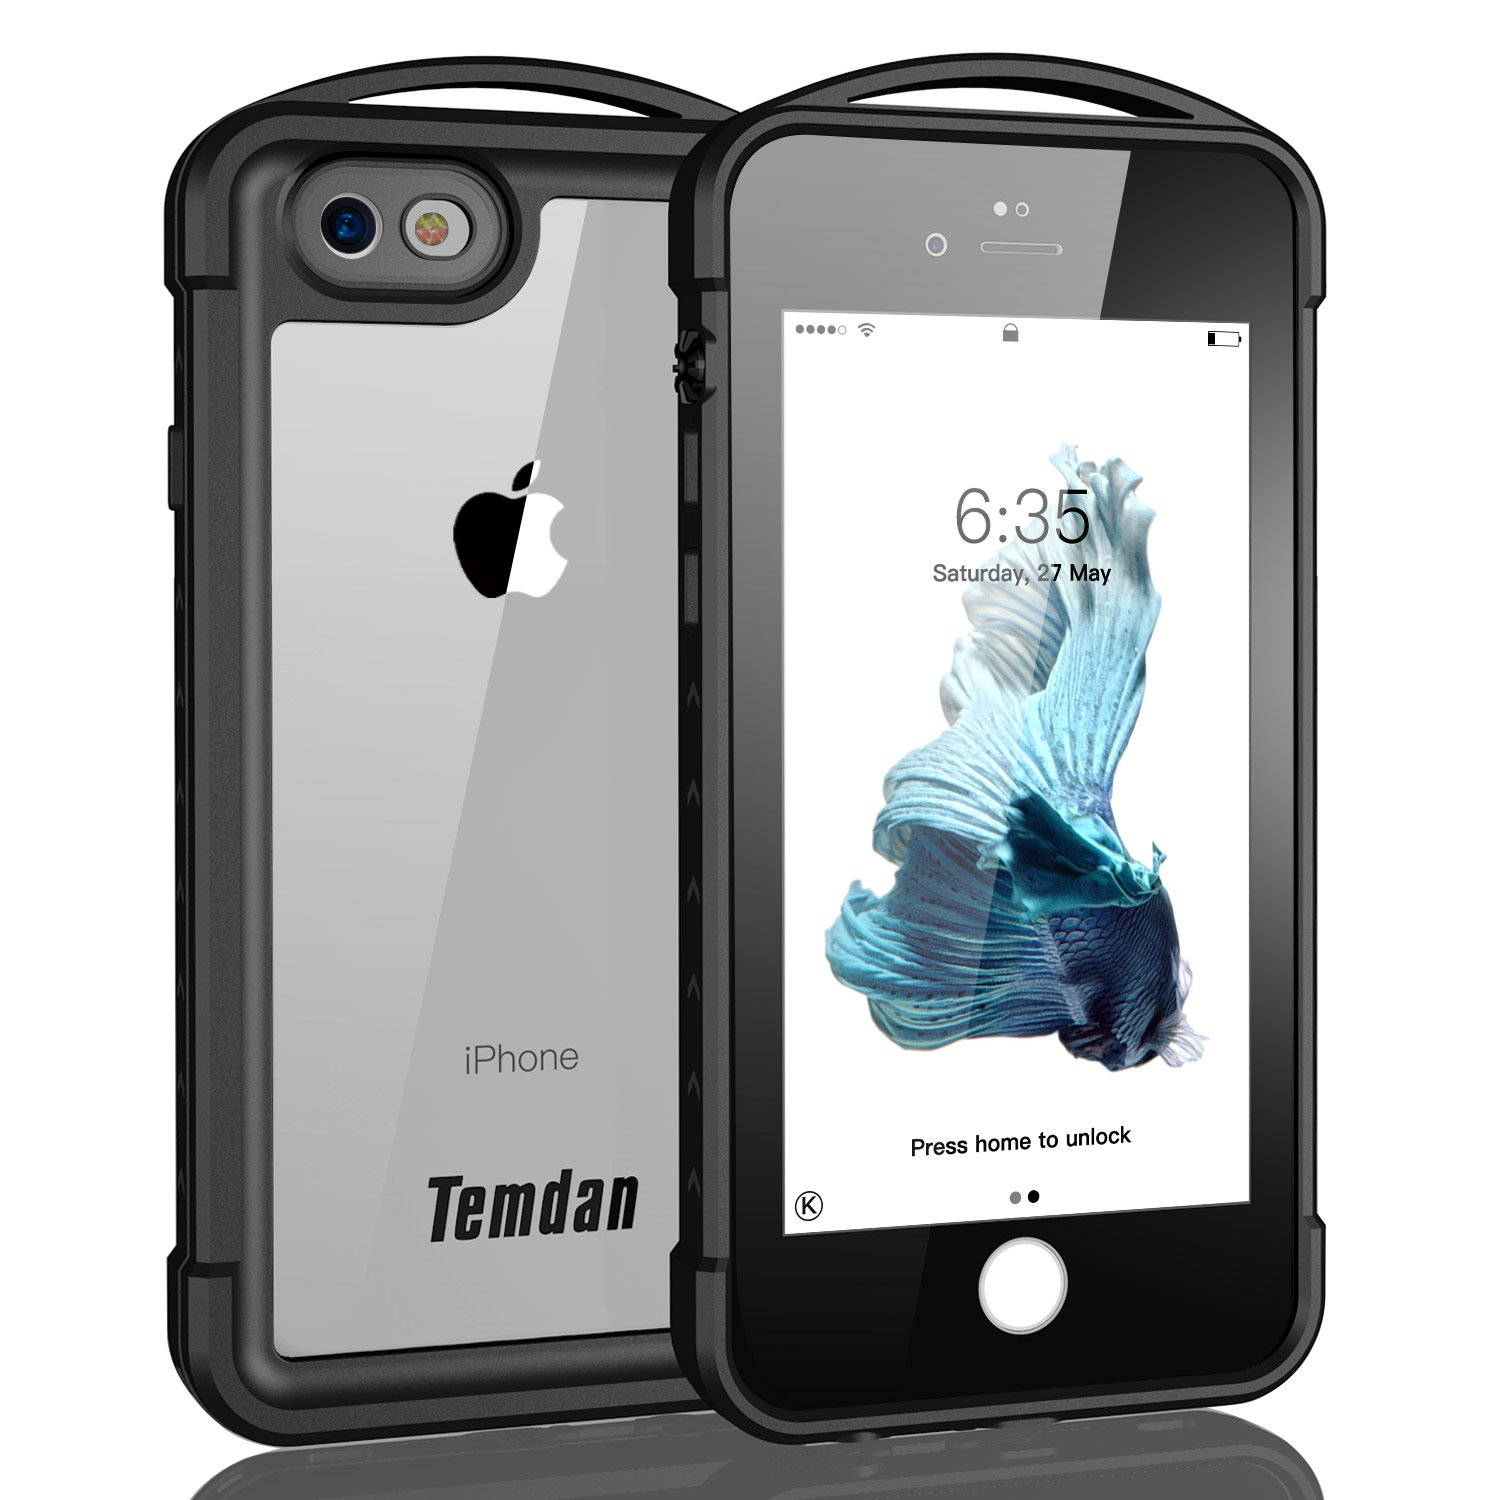 new arrival 754ae 970b5 Temdan iPhone 6 Plus/6s Plus Waterproof Case, Supreme Series Waterproof  Case with Floating Strap Outdoor Rugged Shockproof Case for iPhone 6  plus/6s ...